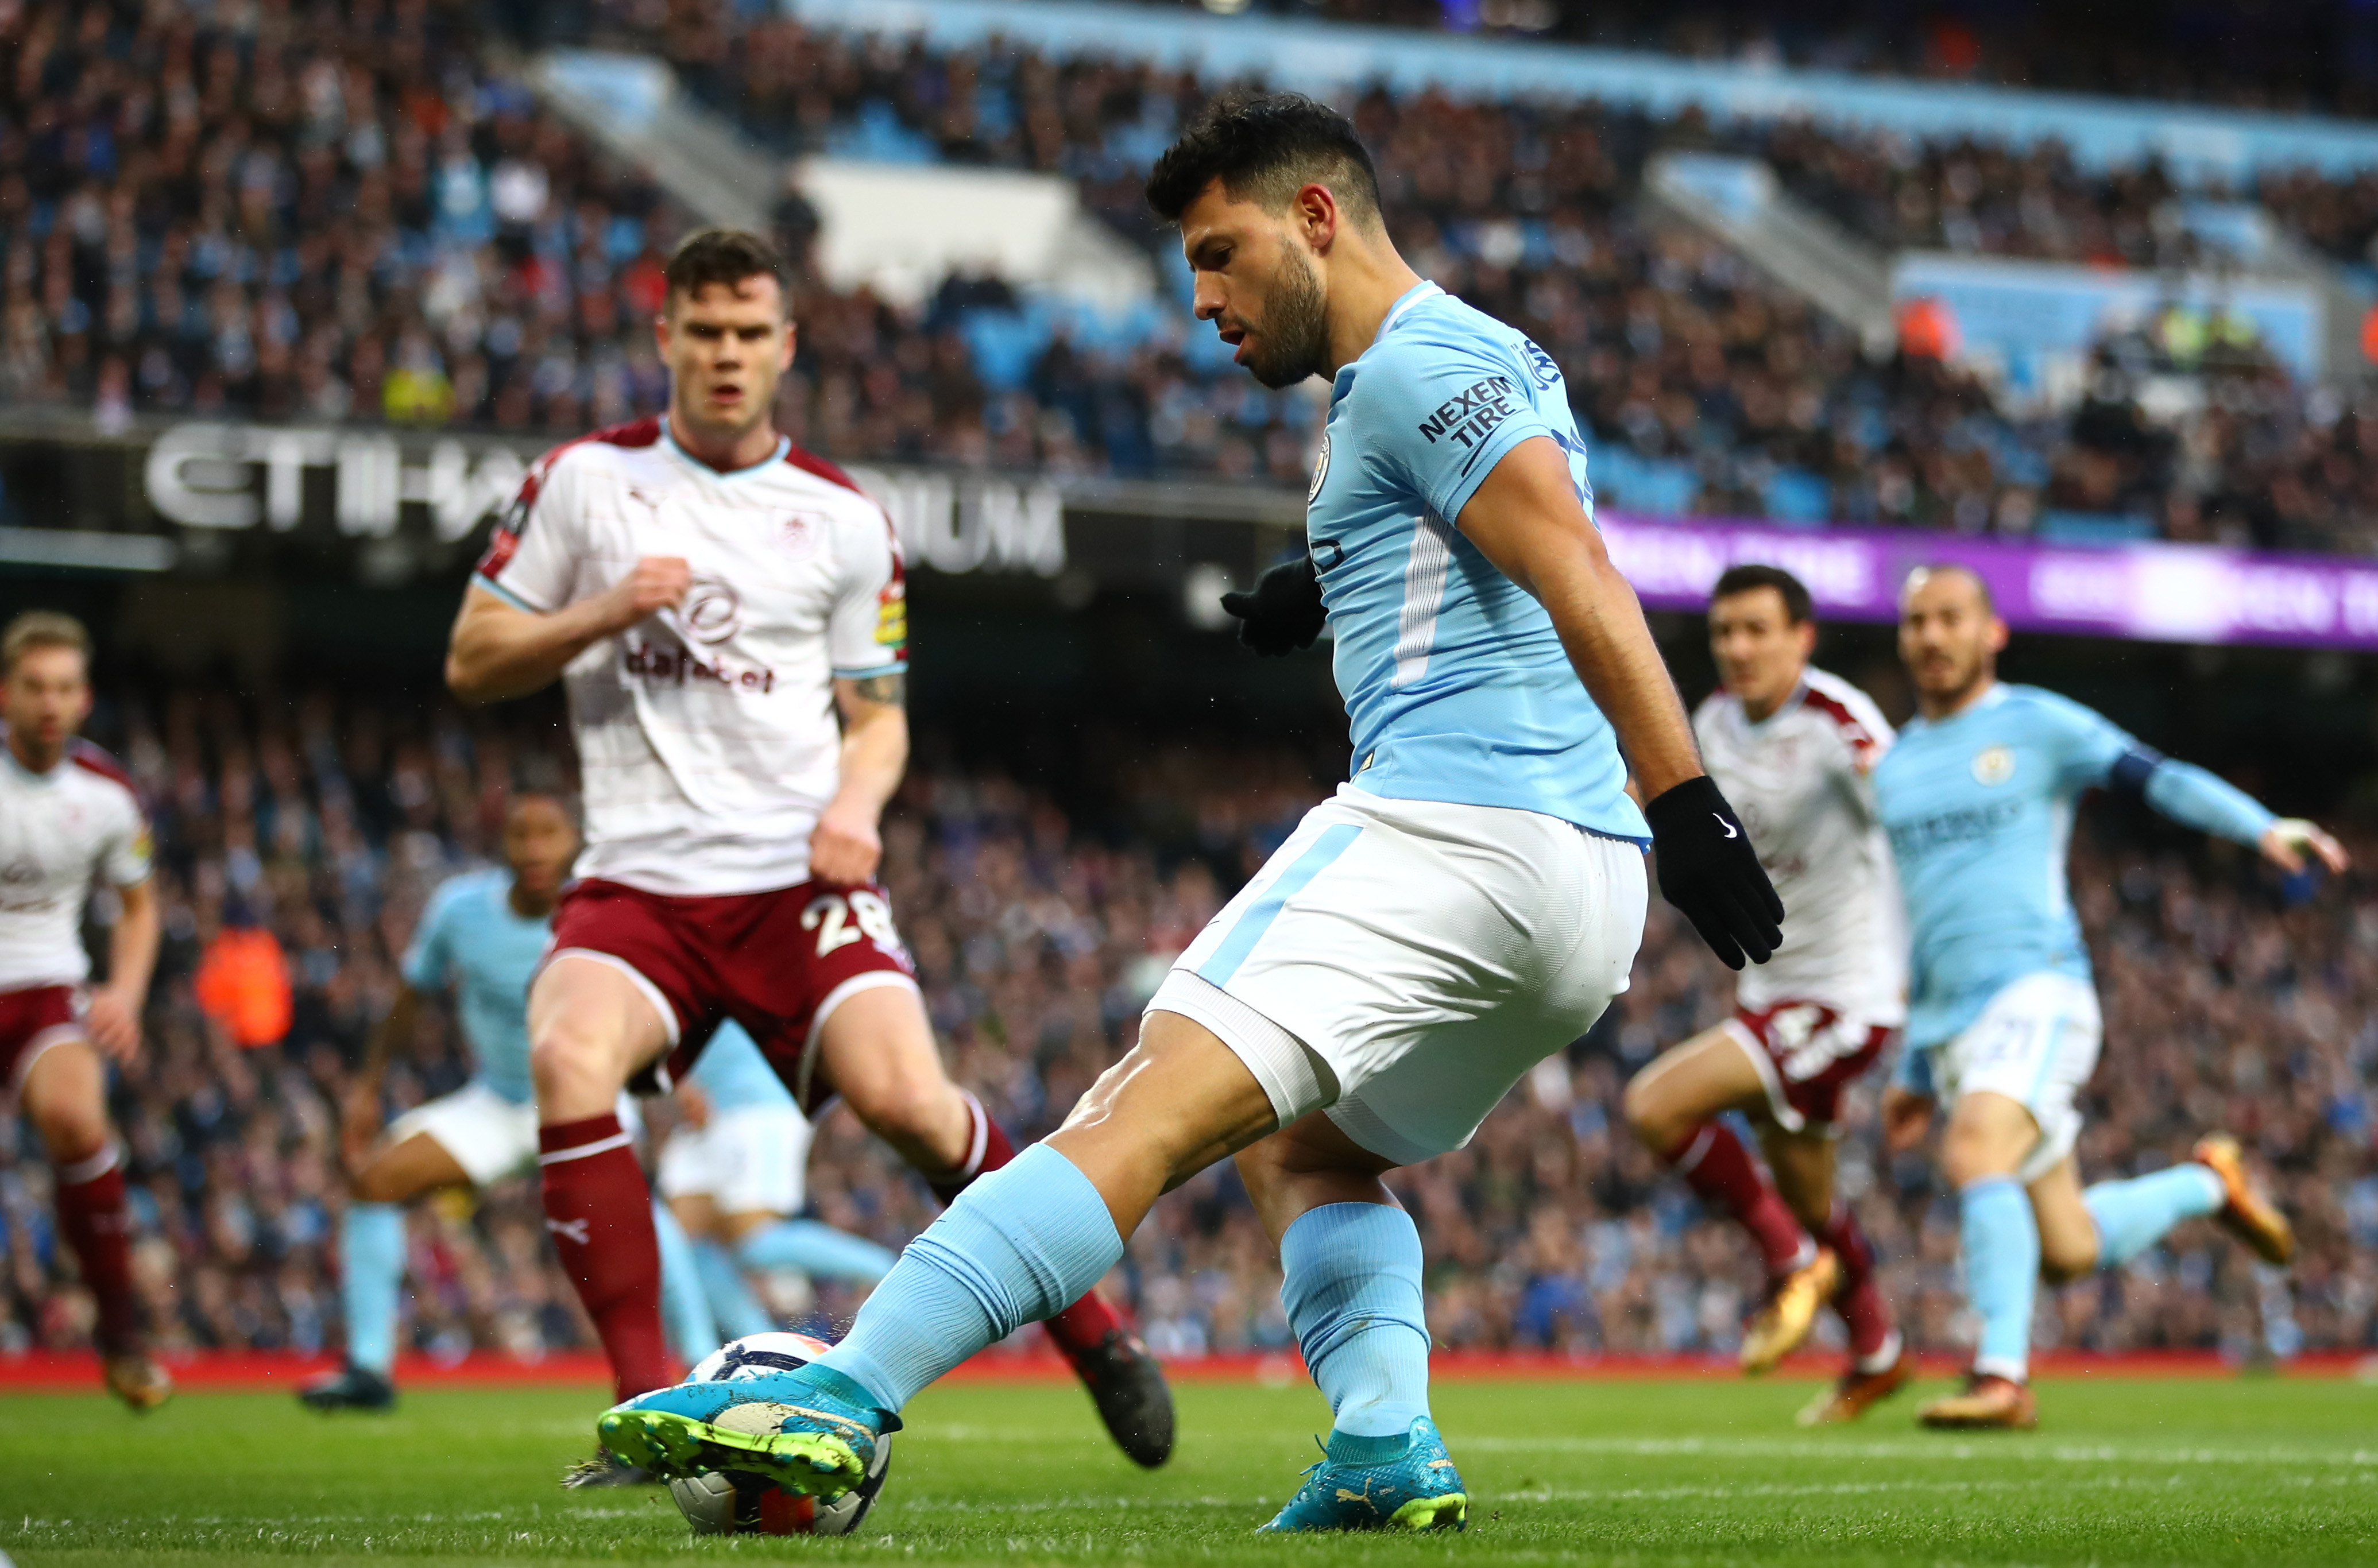 Manchester City come from behind to put four past Burnley